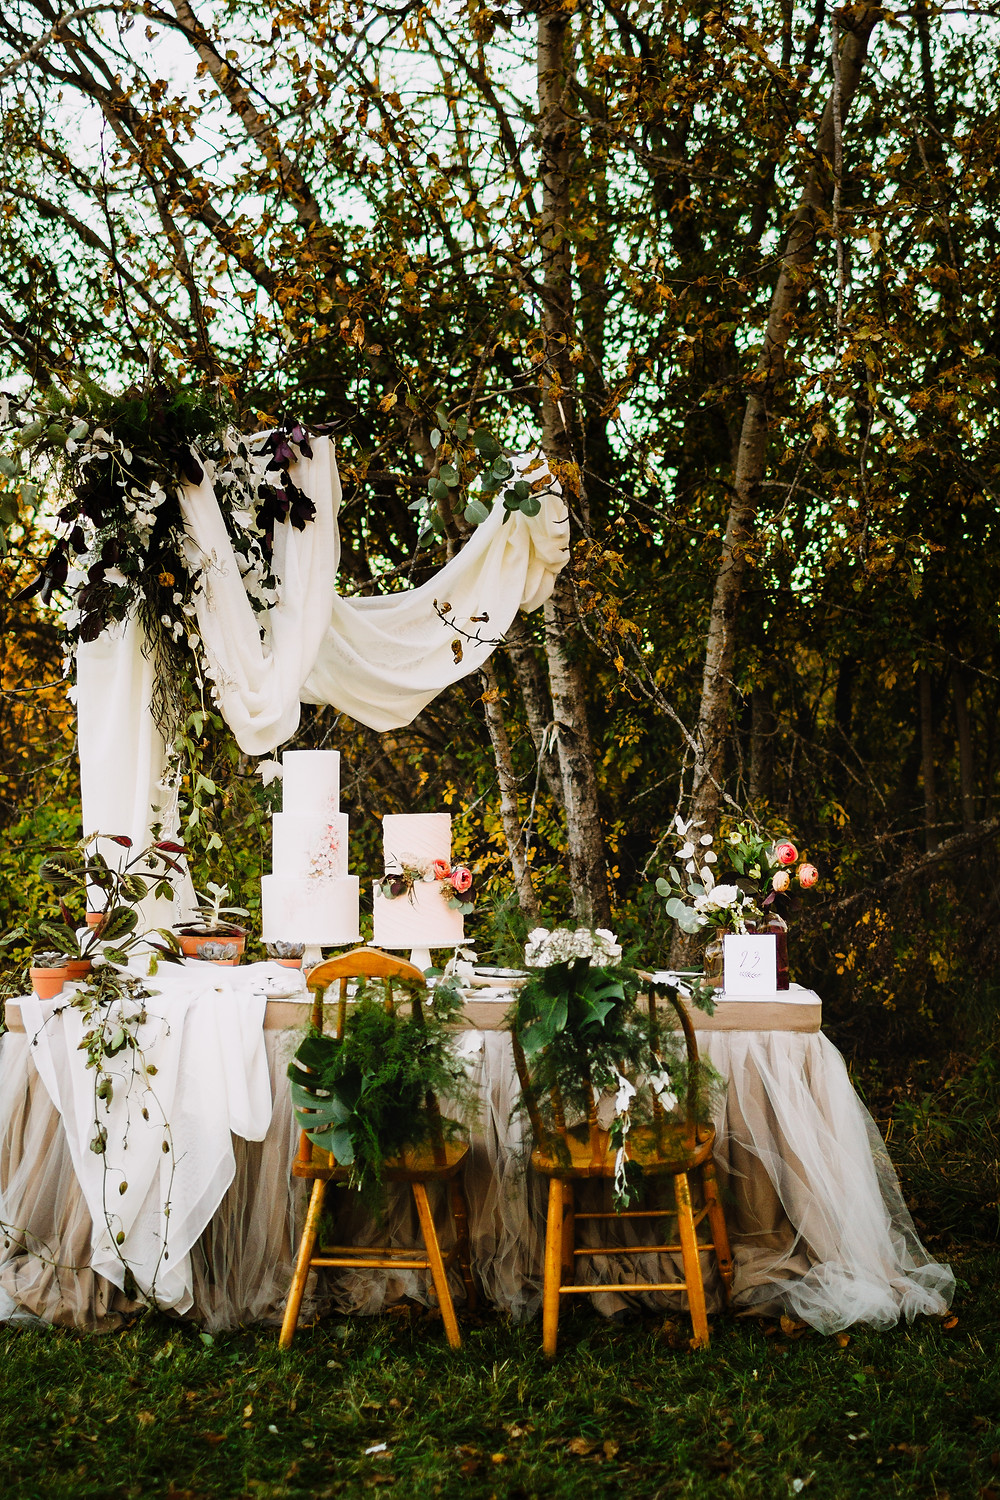 Styling by Fache Florals